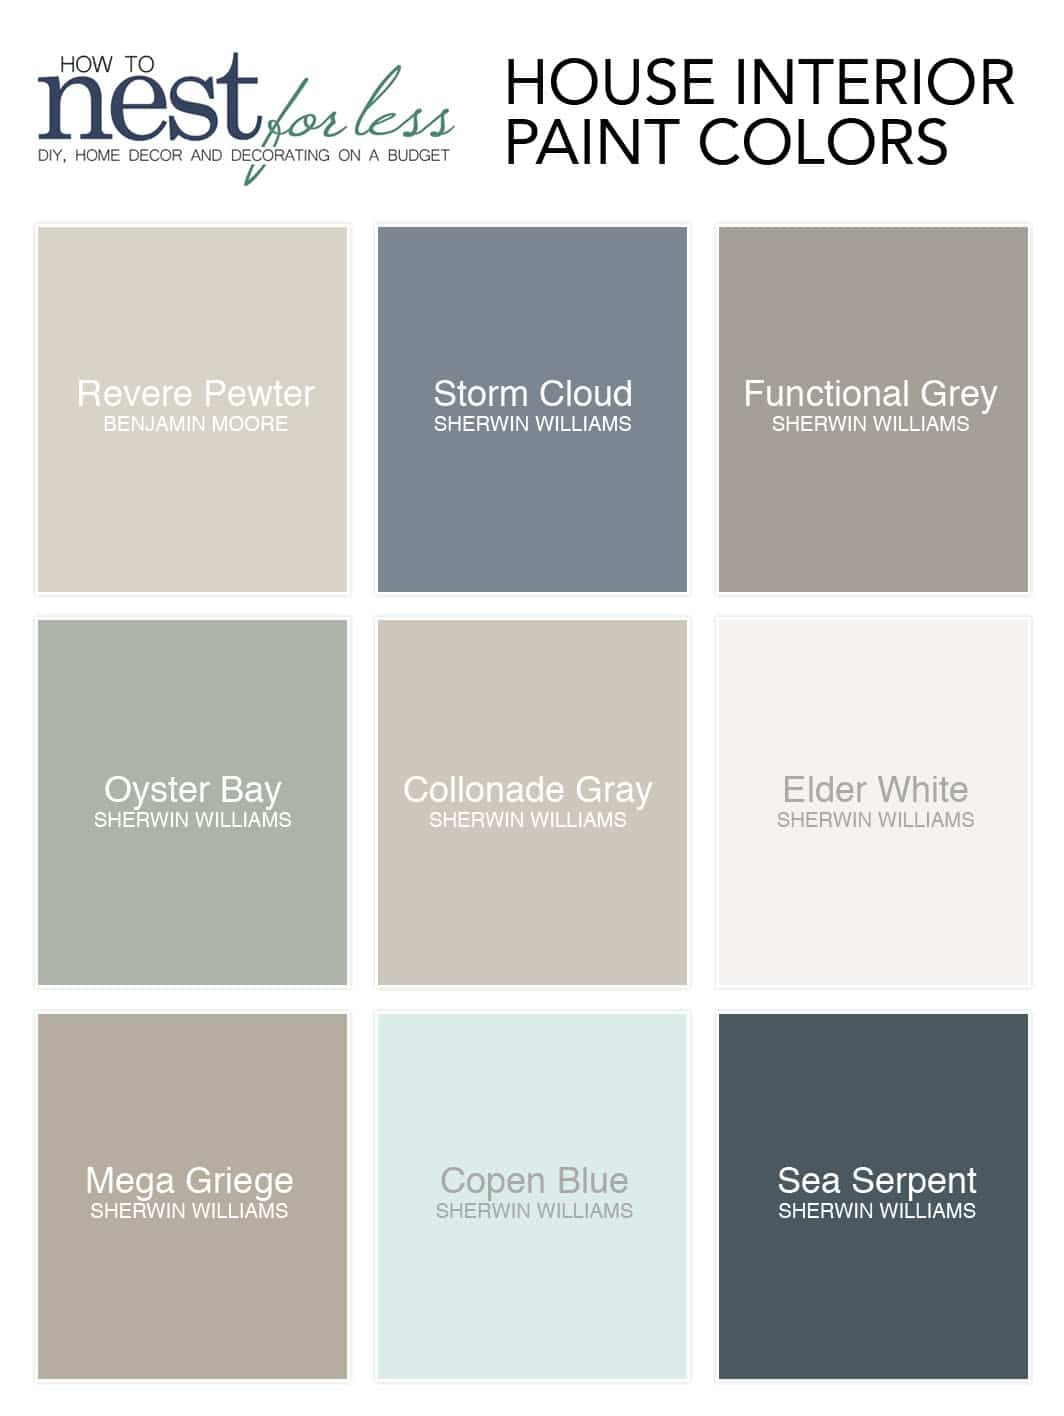 All The Paint Colors I Use In My House How To Nest For Less